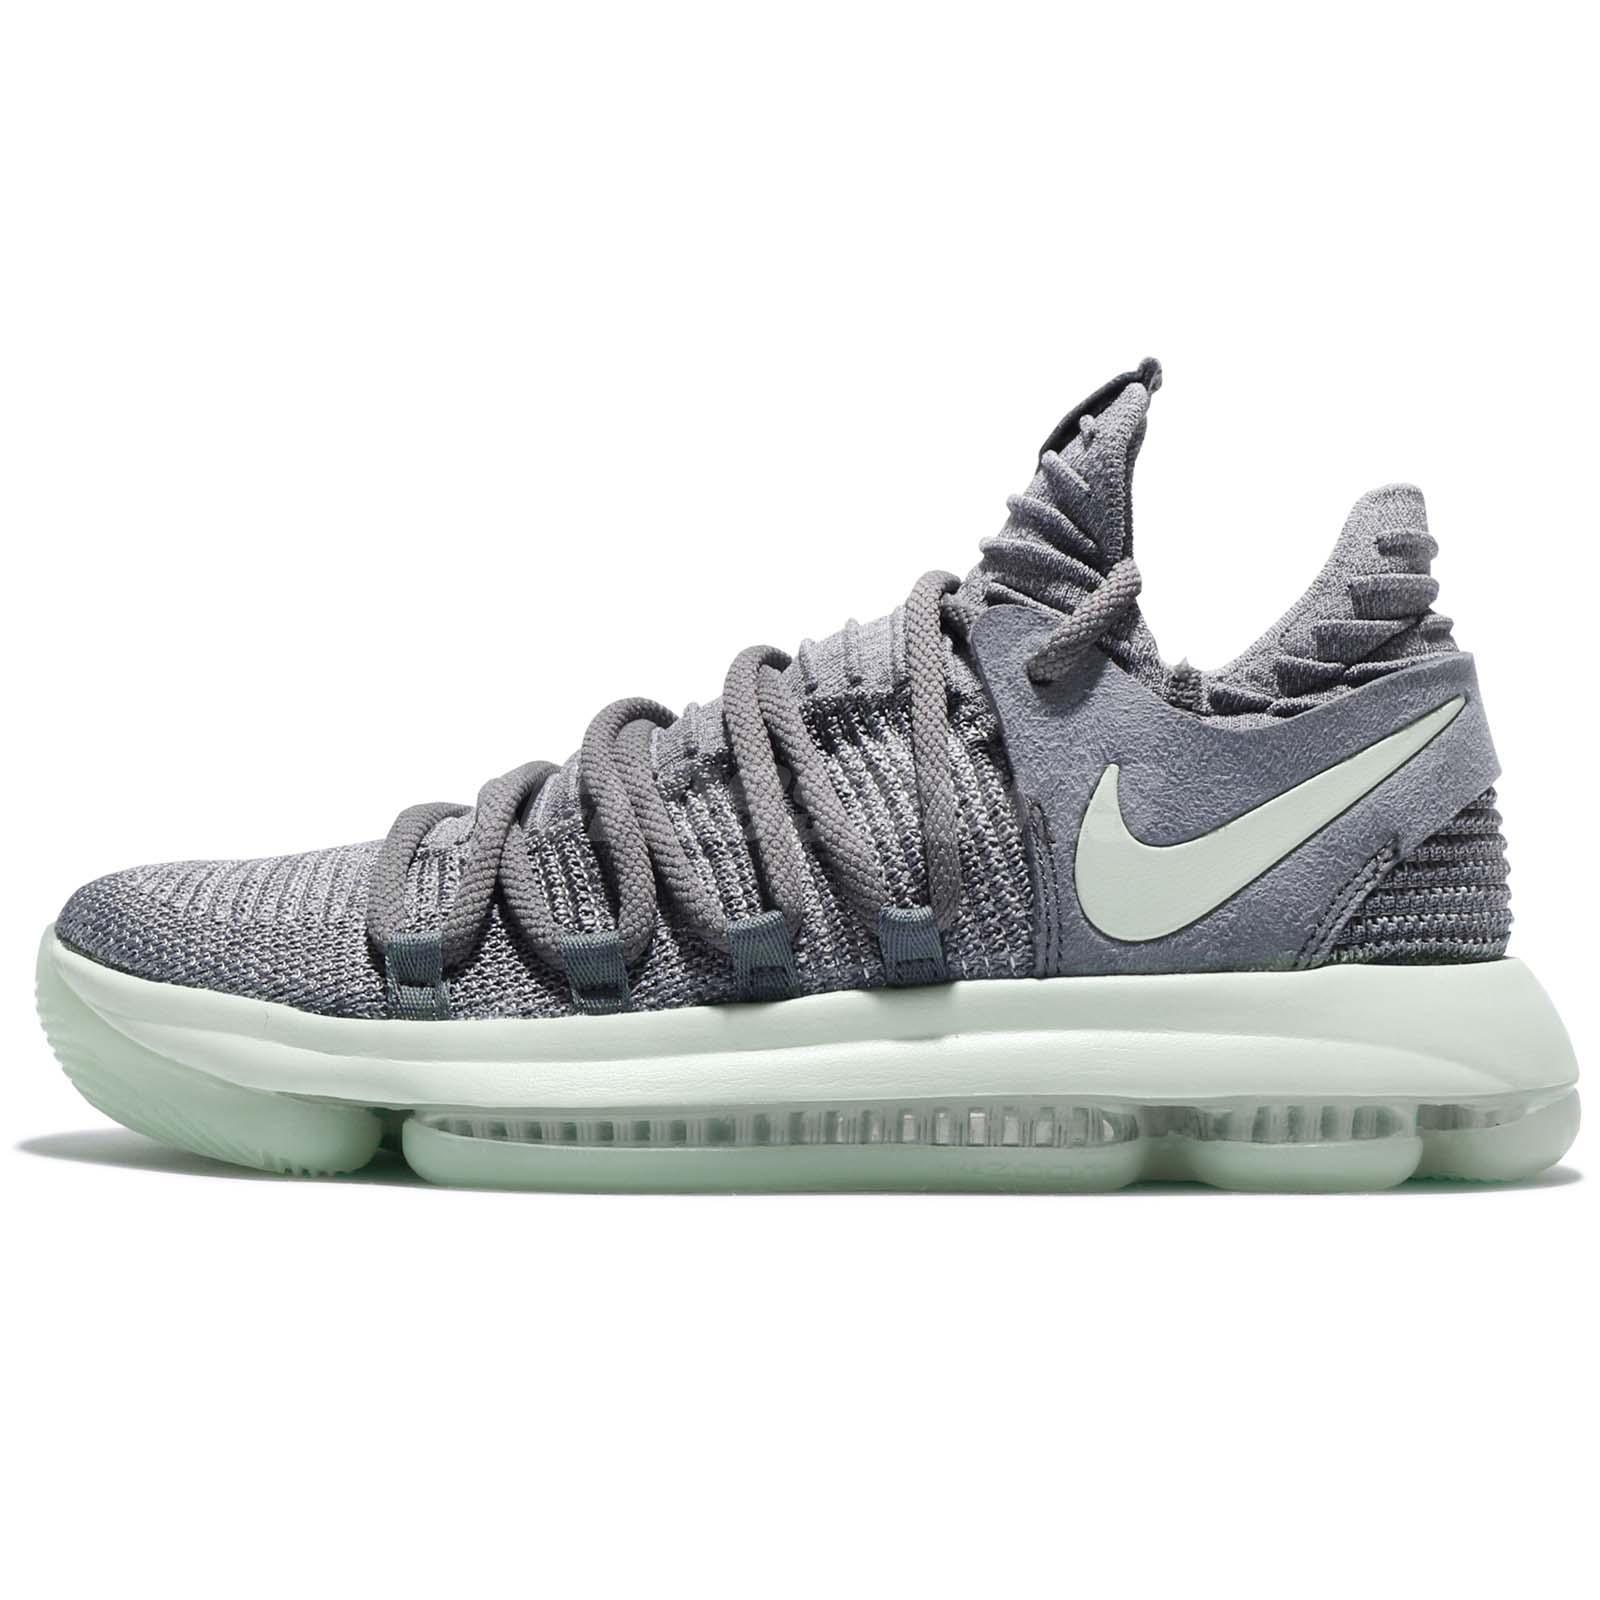 info for 84933 6b996 ... Nike Zoom KD 10 EP X Kevin Durant Cool Grey Igloo Men Basketball 897816- 002 ...